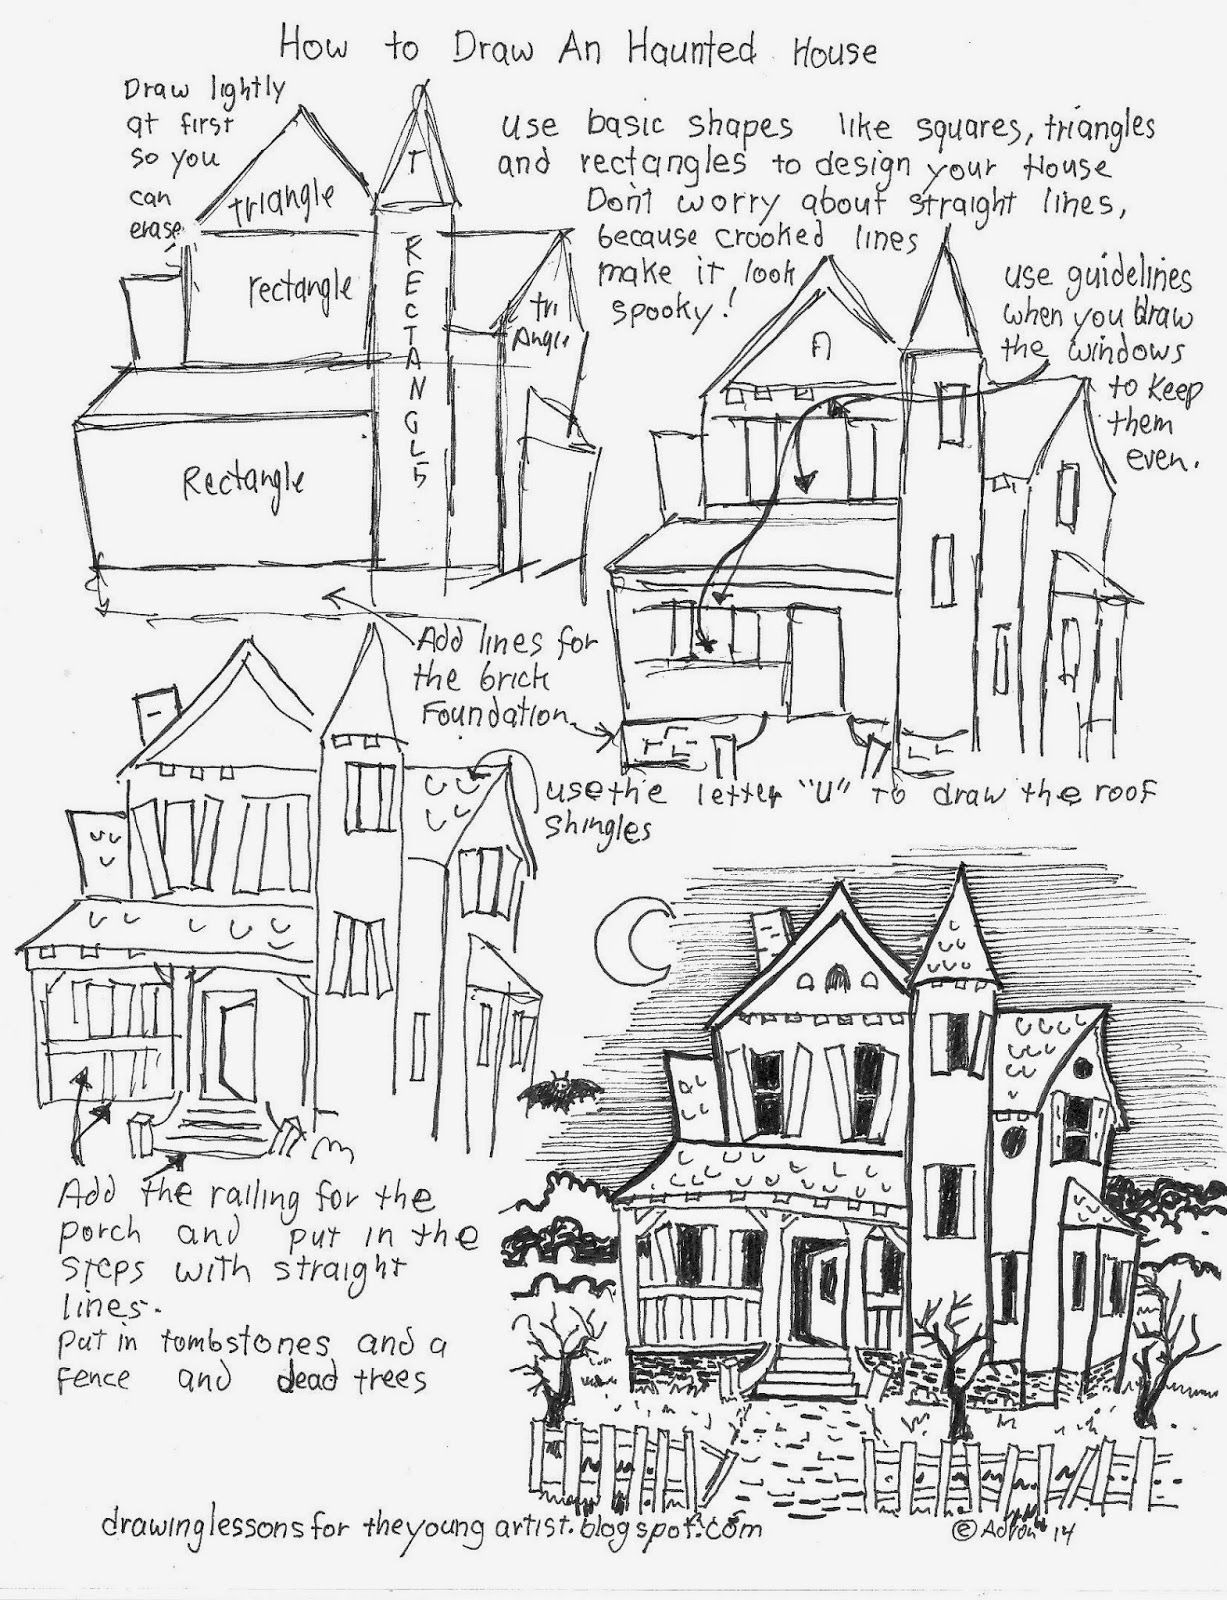 How to Draw A Pretty House Awesome How to Draw A Haunted House Free Worksheet How to Draw